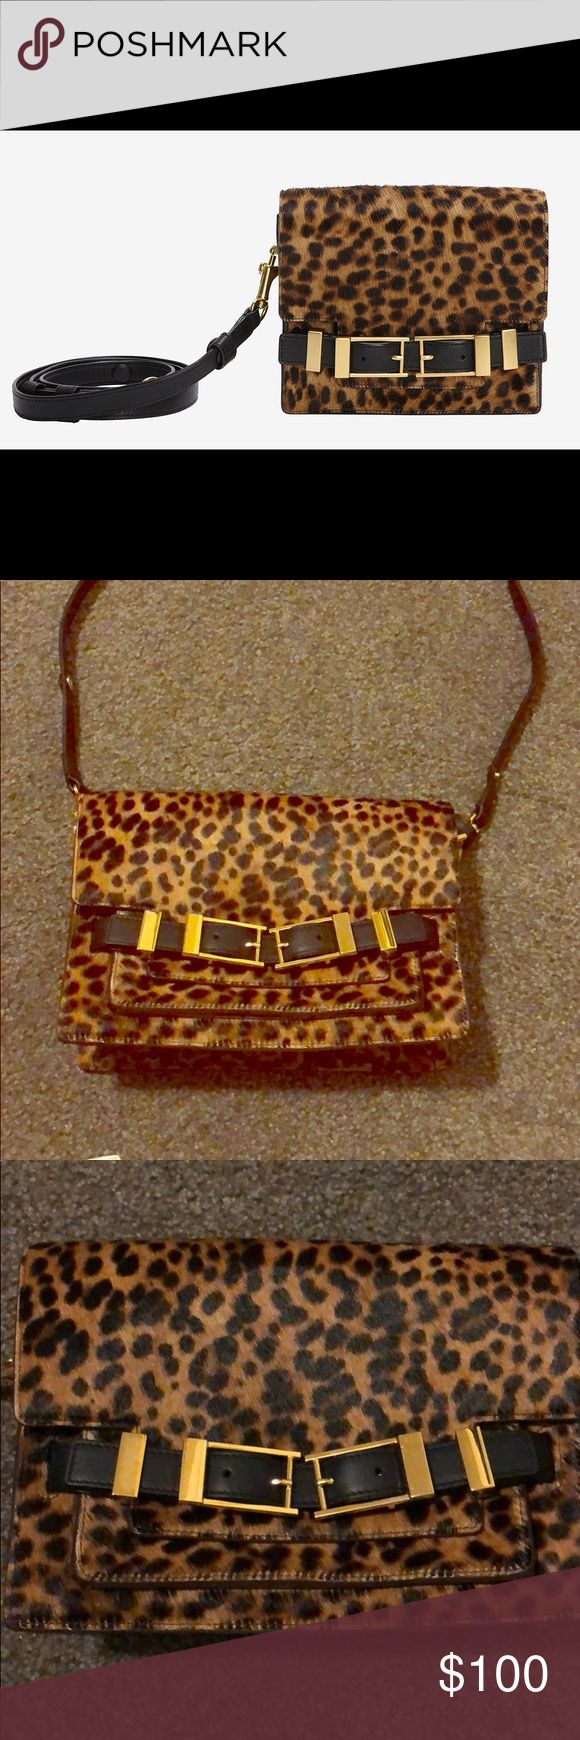 A.L.C. Davenport Leopard Crossbody Clutch This is a cross body Davenport leopard print clutch bag from A.L.C. Originally priced at $675.00! Never used A.L.C. Bags Crossbody Bags